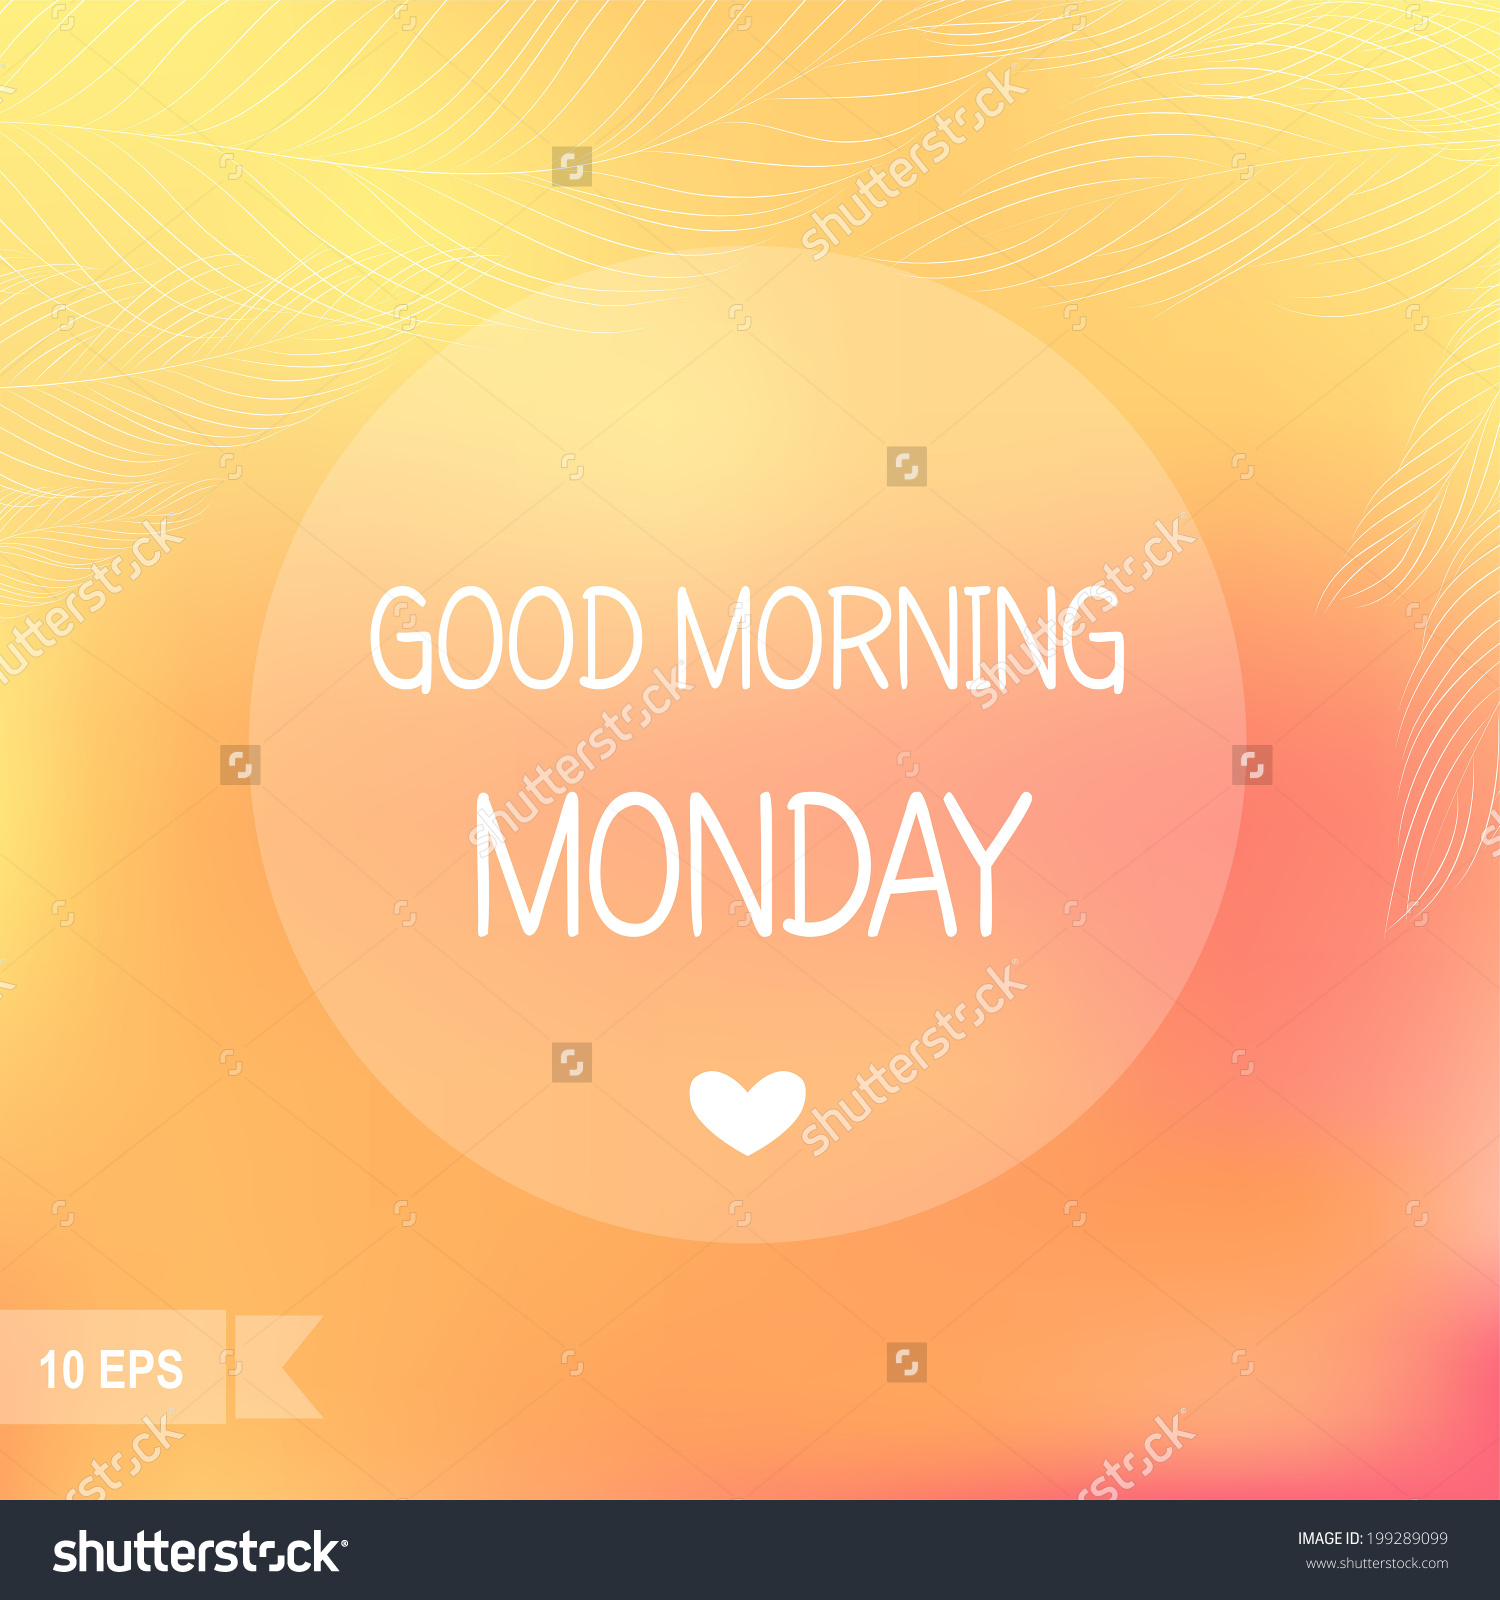 Days Of The Week Good Morning Monday On Blurred Background Stock 1500x1600